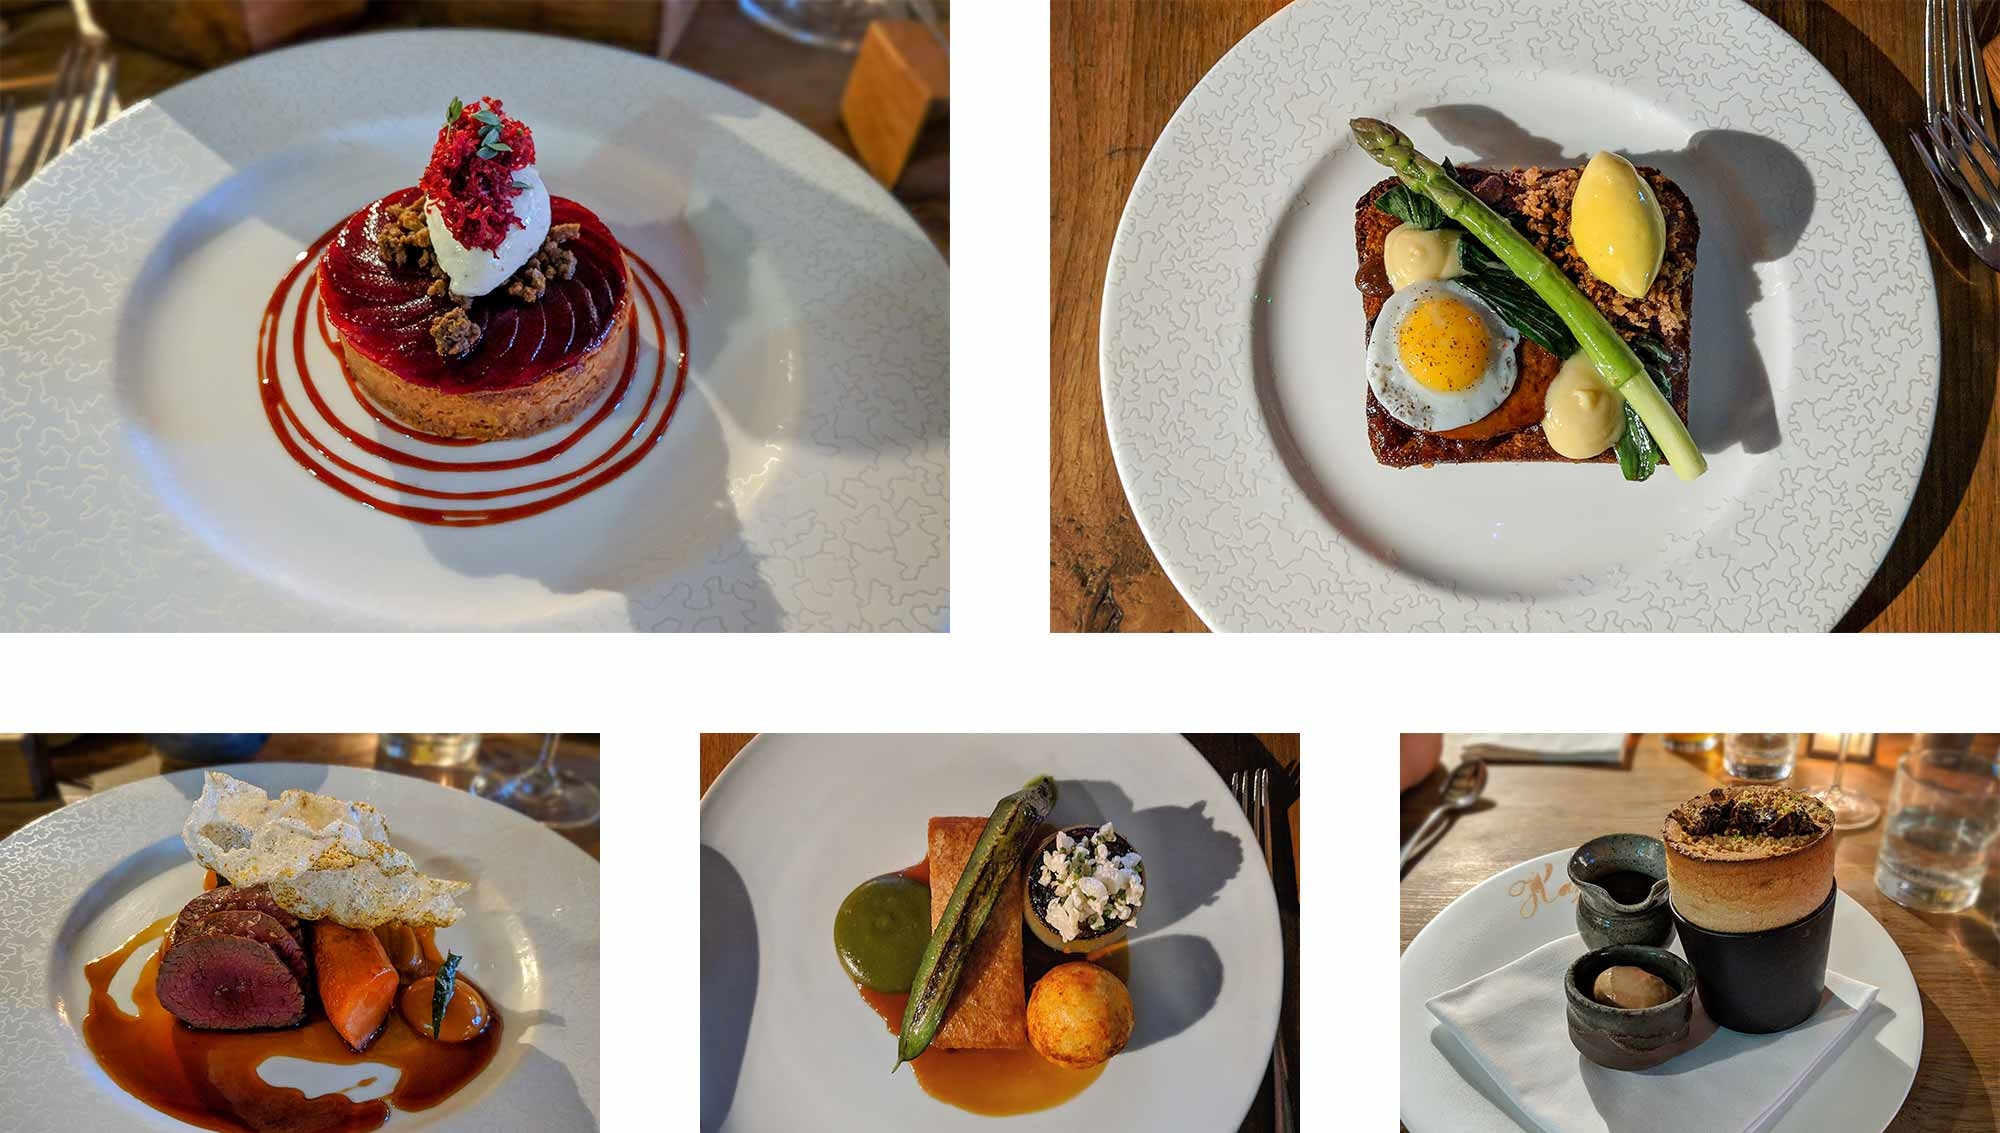 A collage of food, cheddar tart, egg and asparagus on toast, venison with vegetables, pork belly with black pudding and a banana souffle with ice cream.